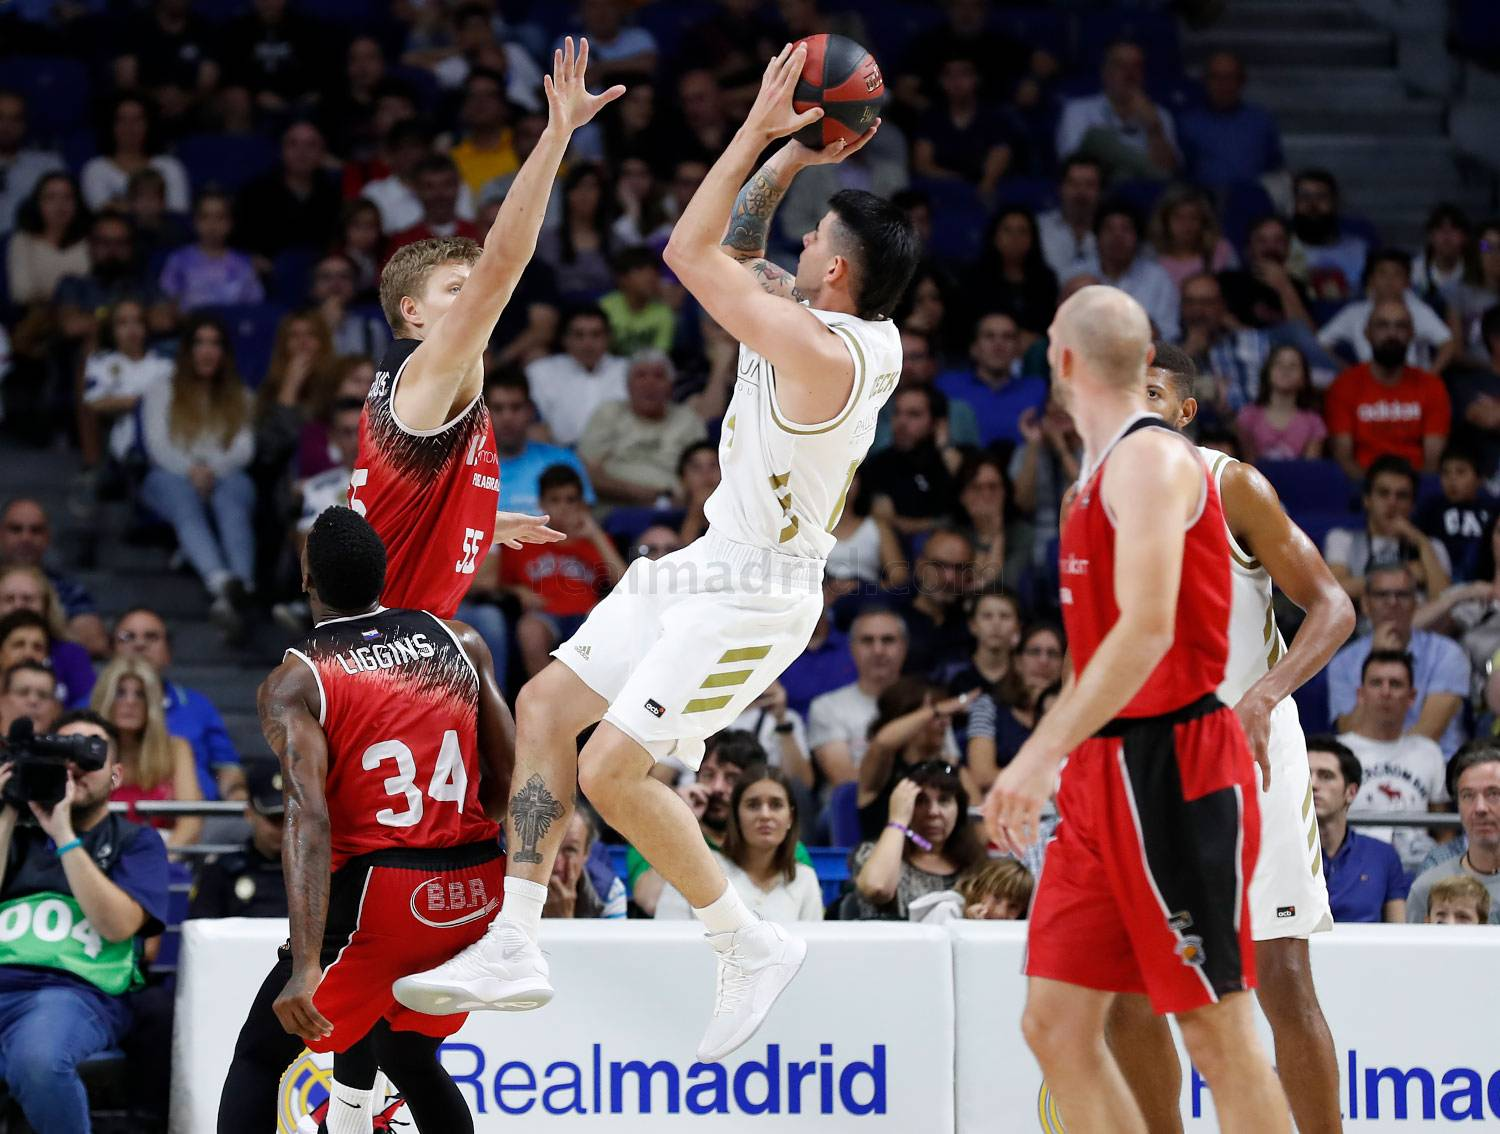 Real Madrid - Real Madrid - Montakit Fuenlabrada - 13-10-2019